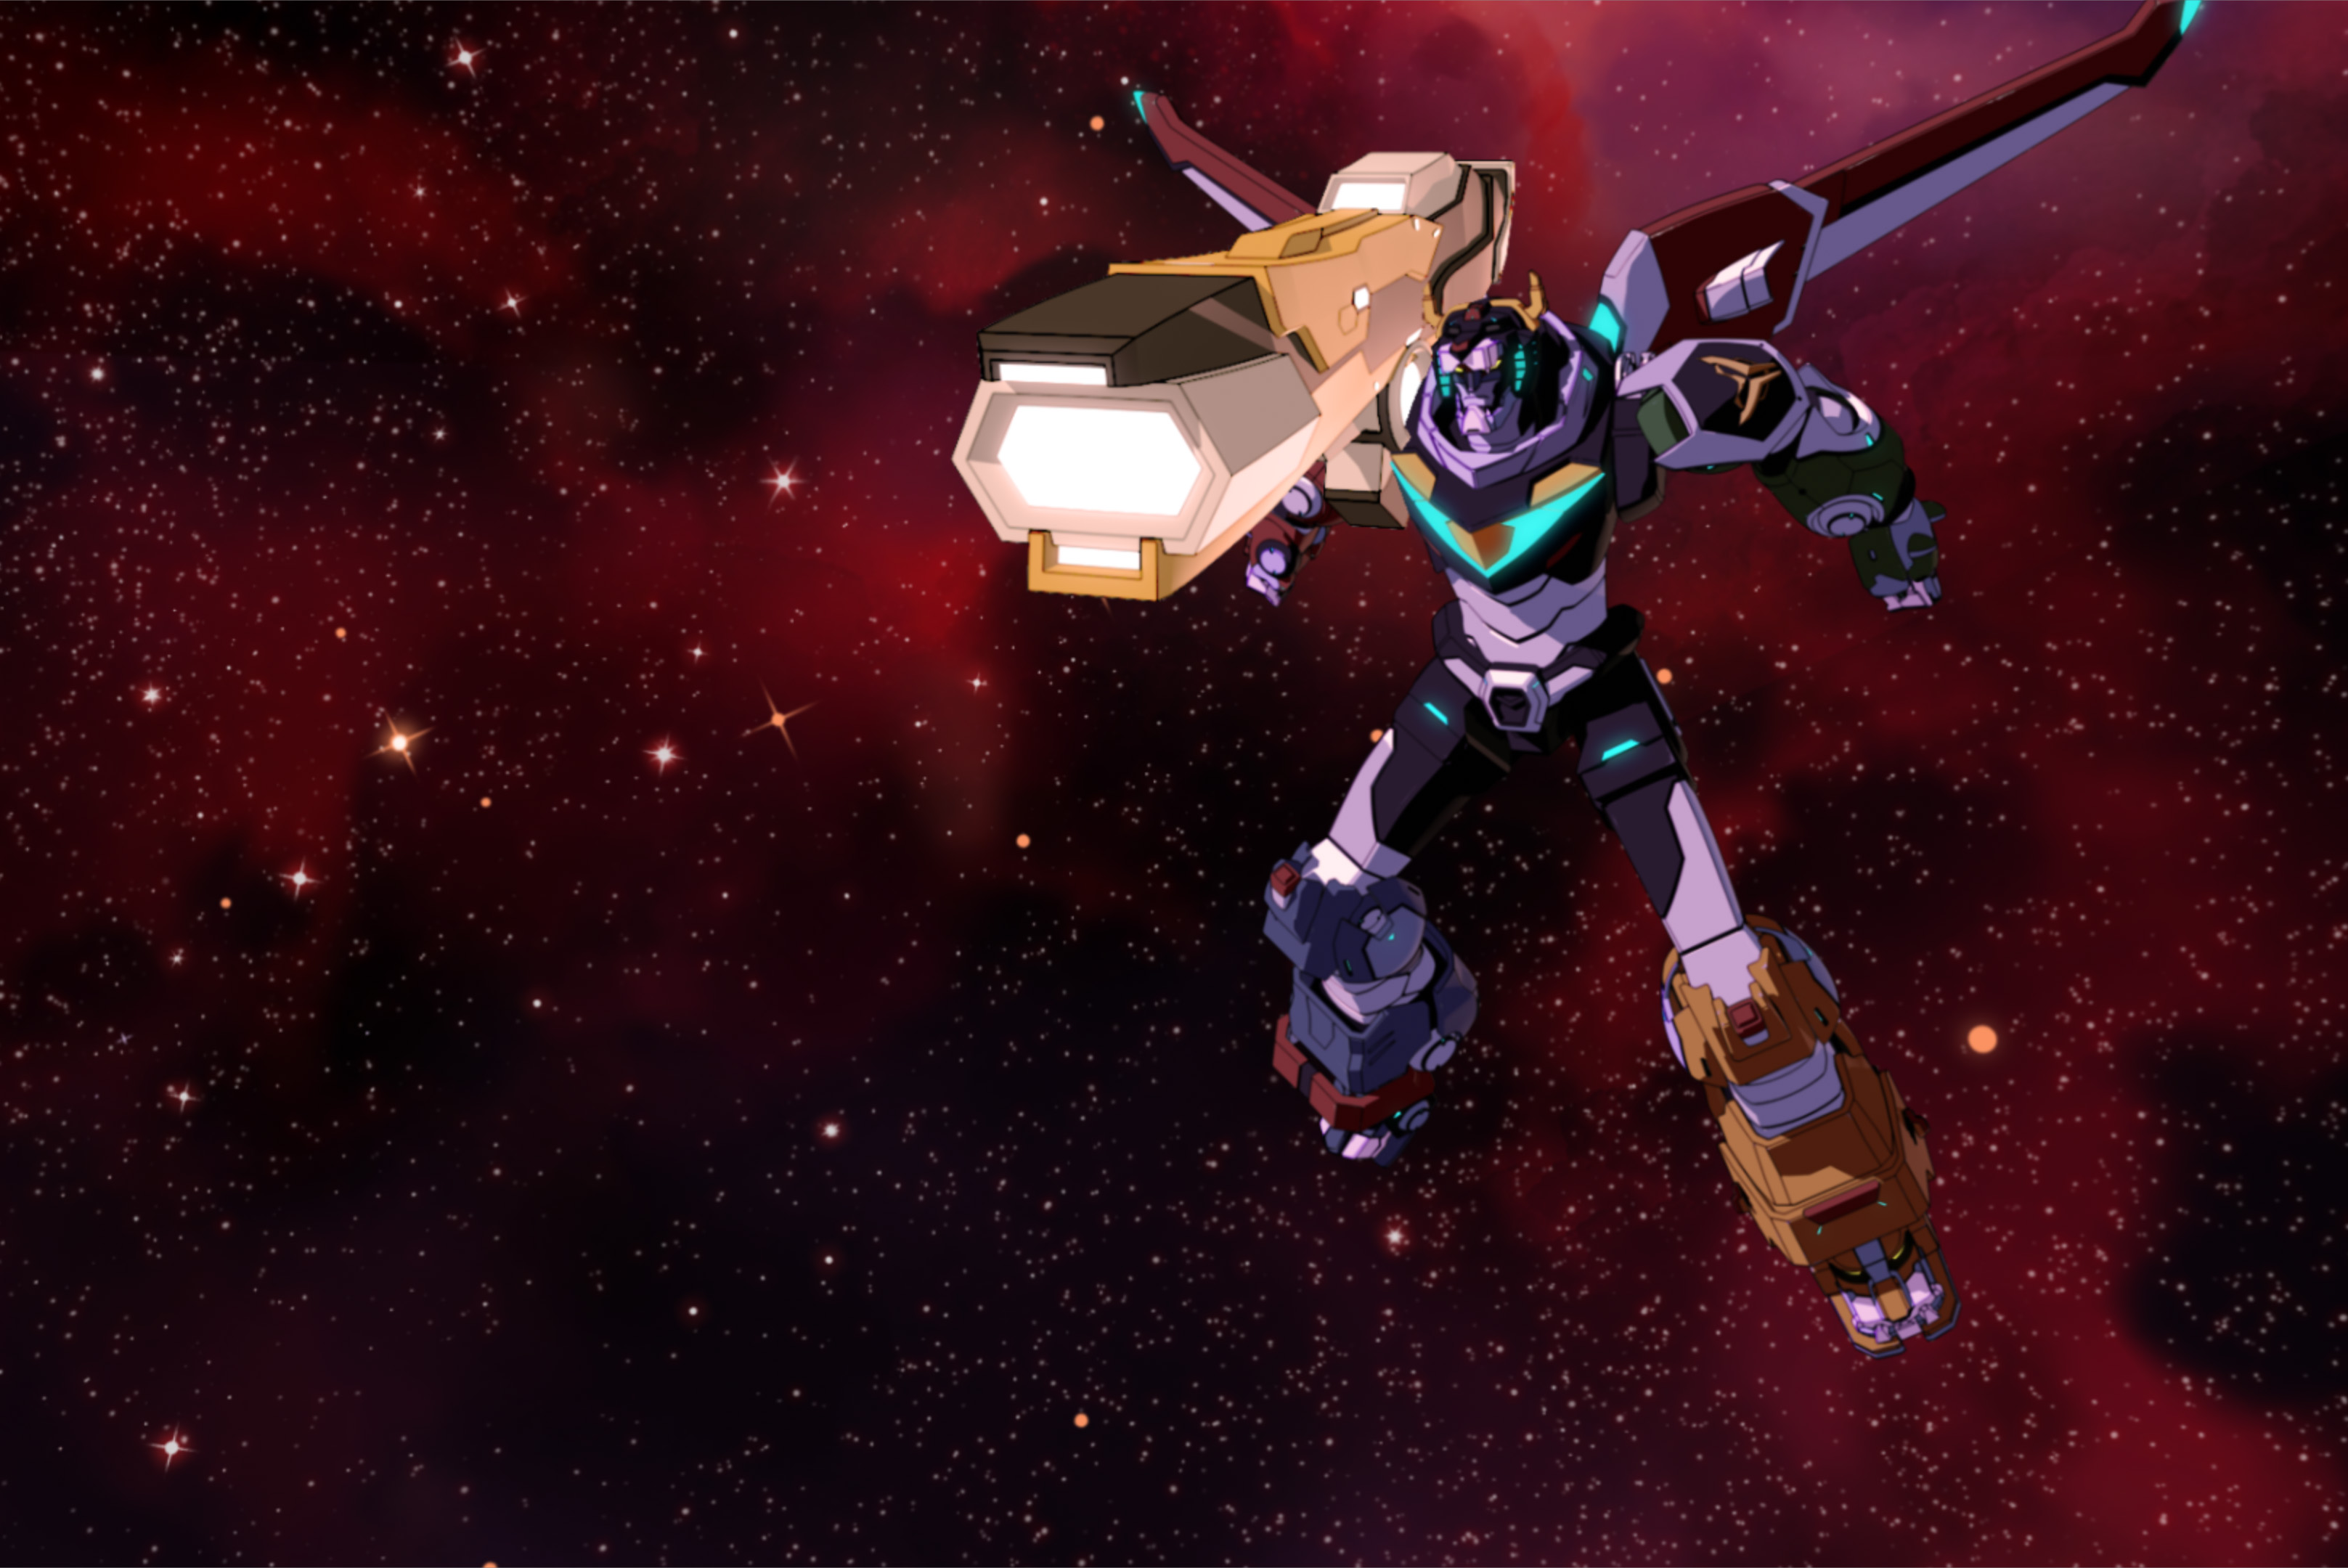 The complete Voltron mech, floating in space with a massive rifle.